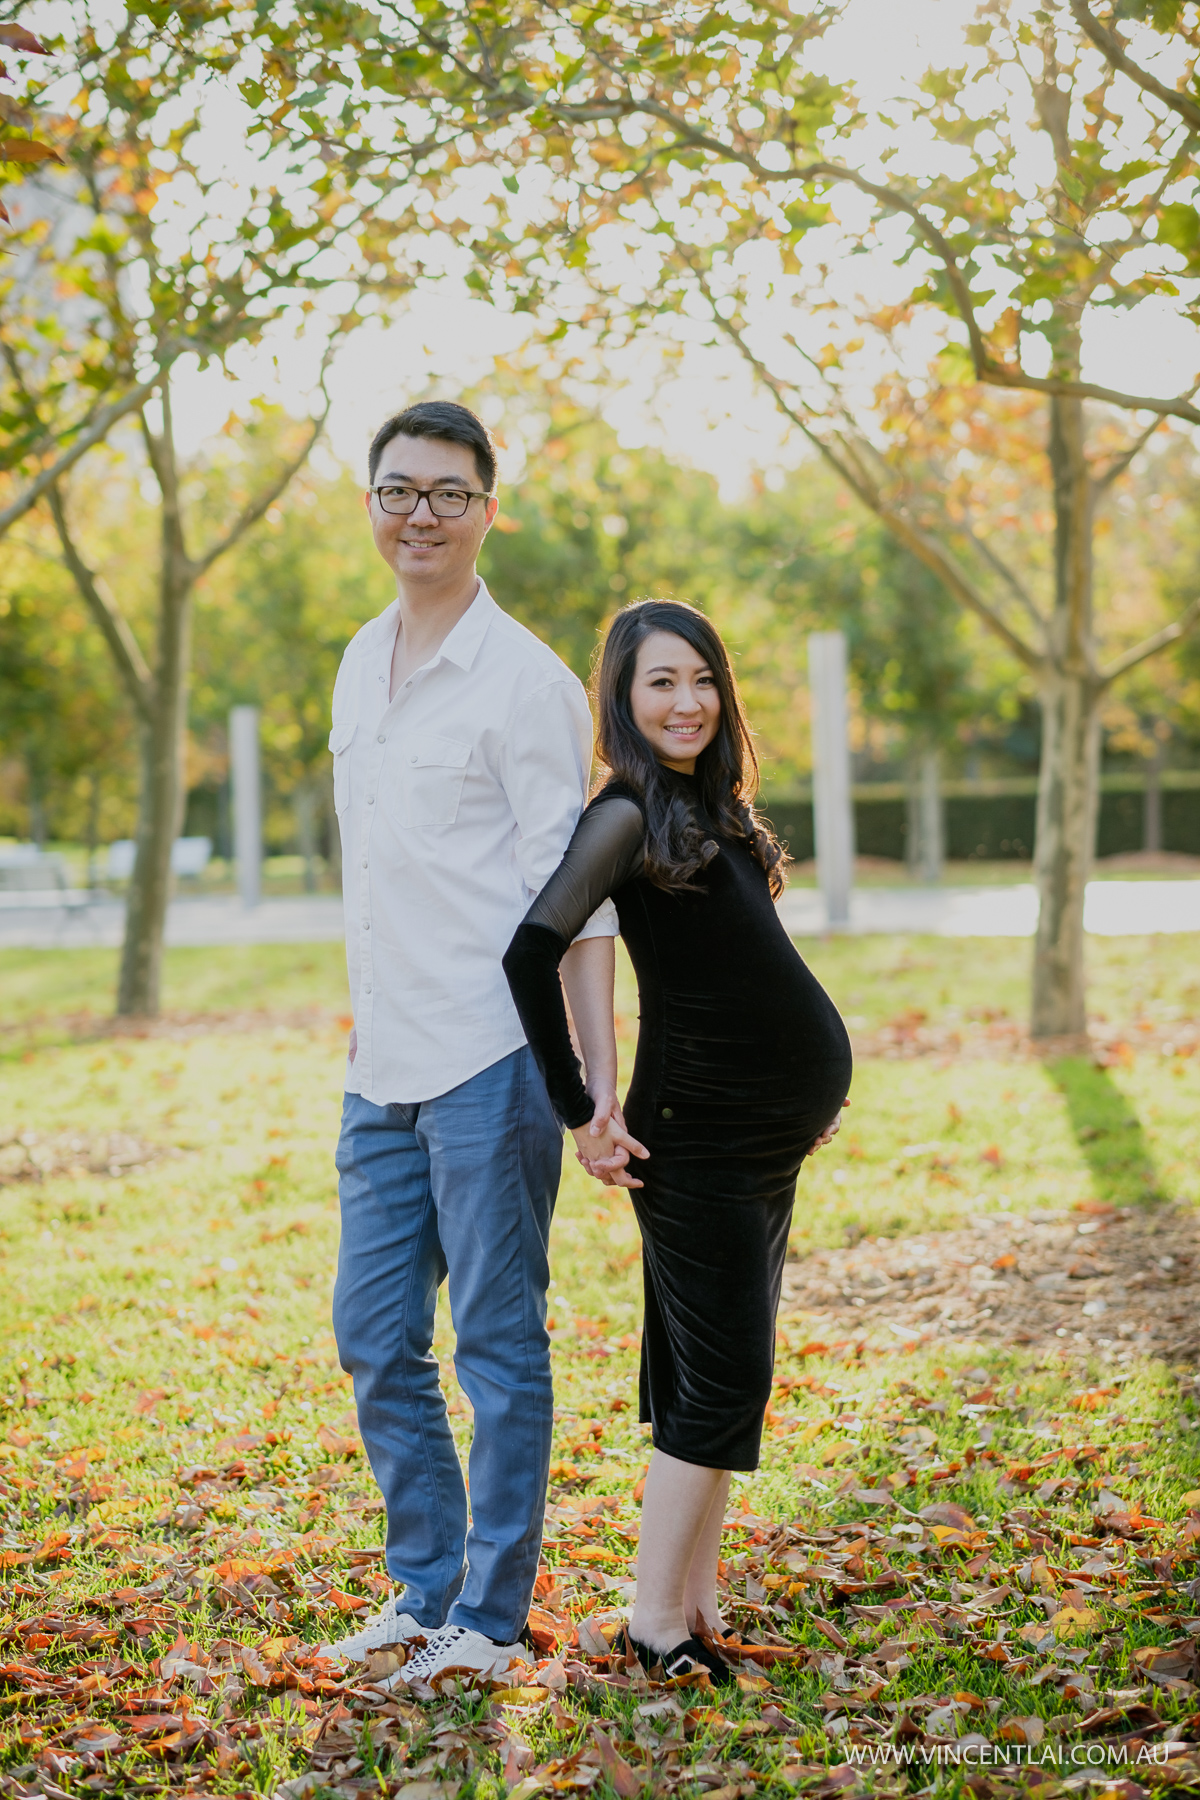 Autumn Maternity Photography Session